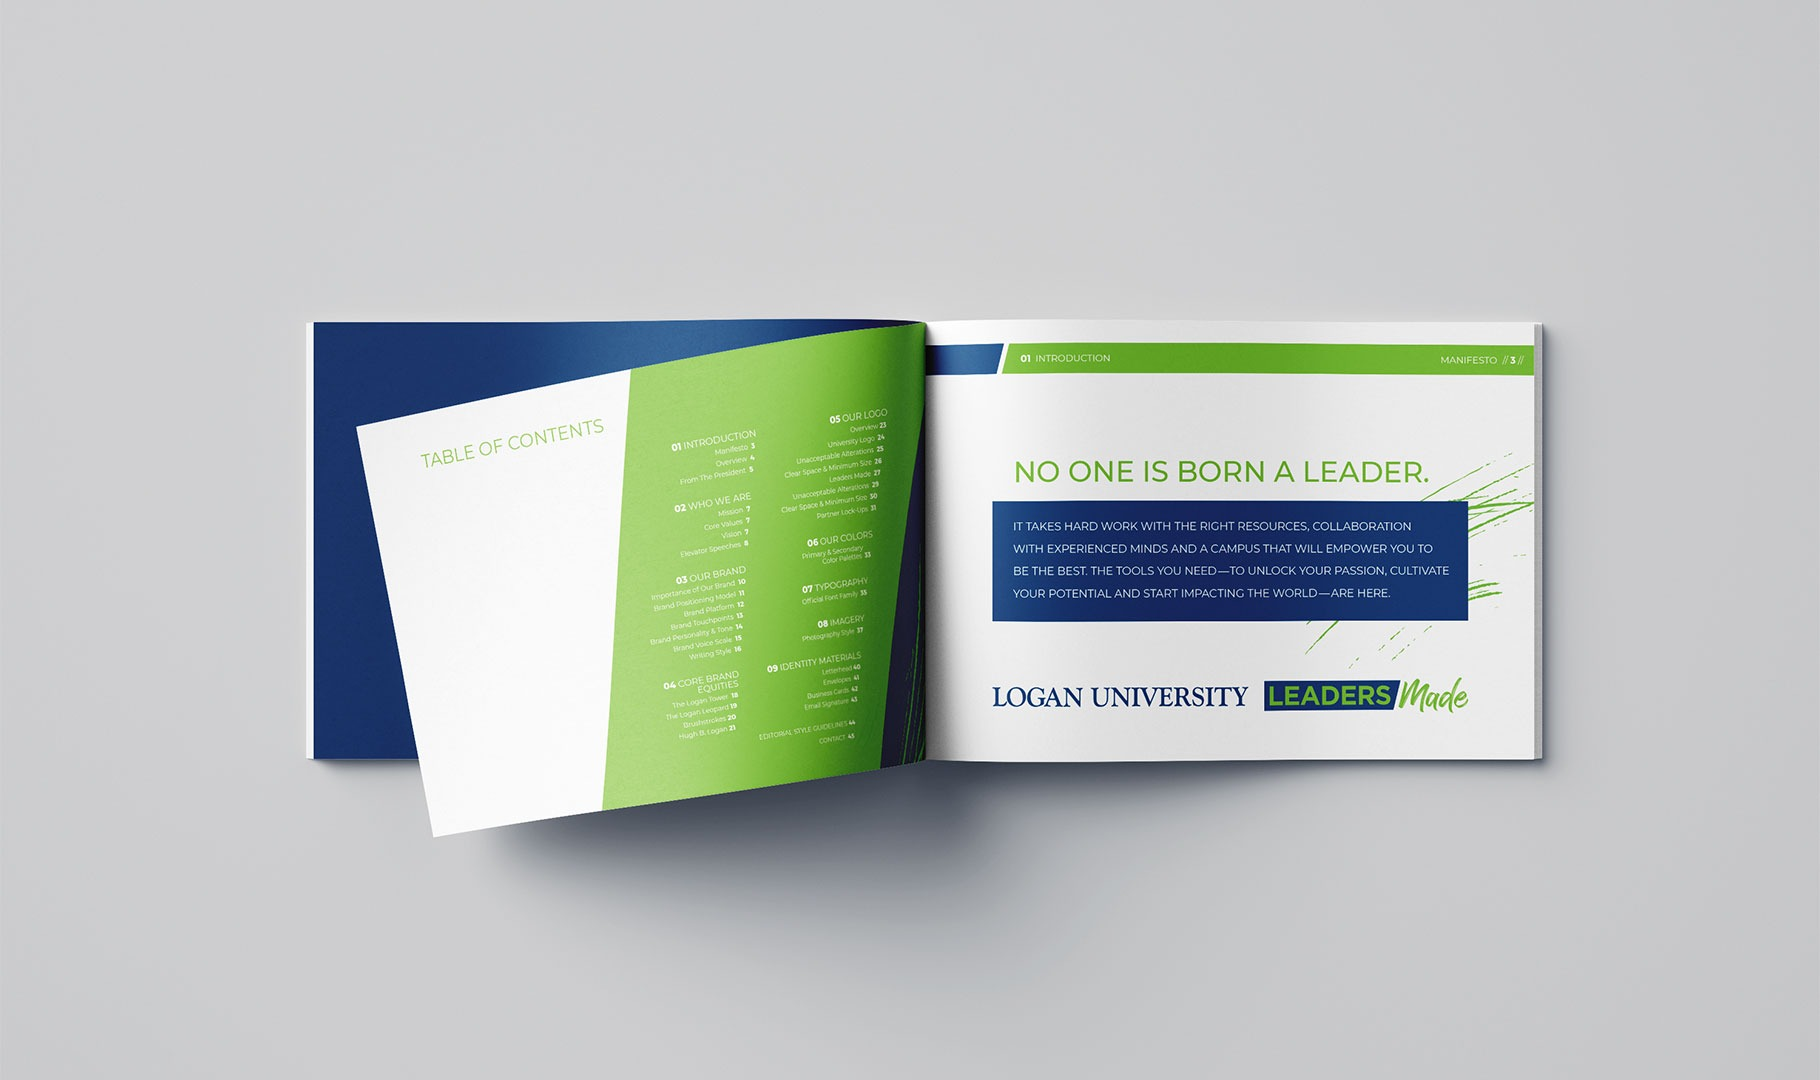 Logan University Brand Guidelines booklet opened up.